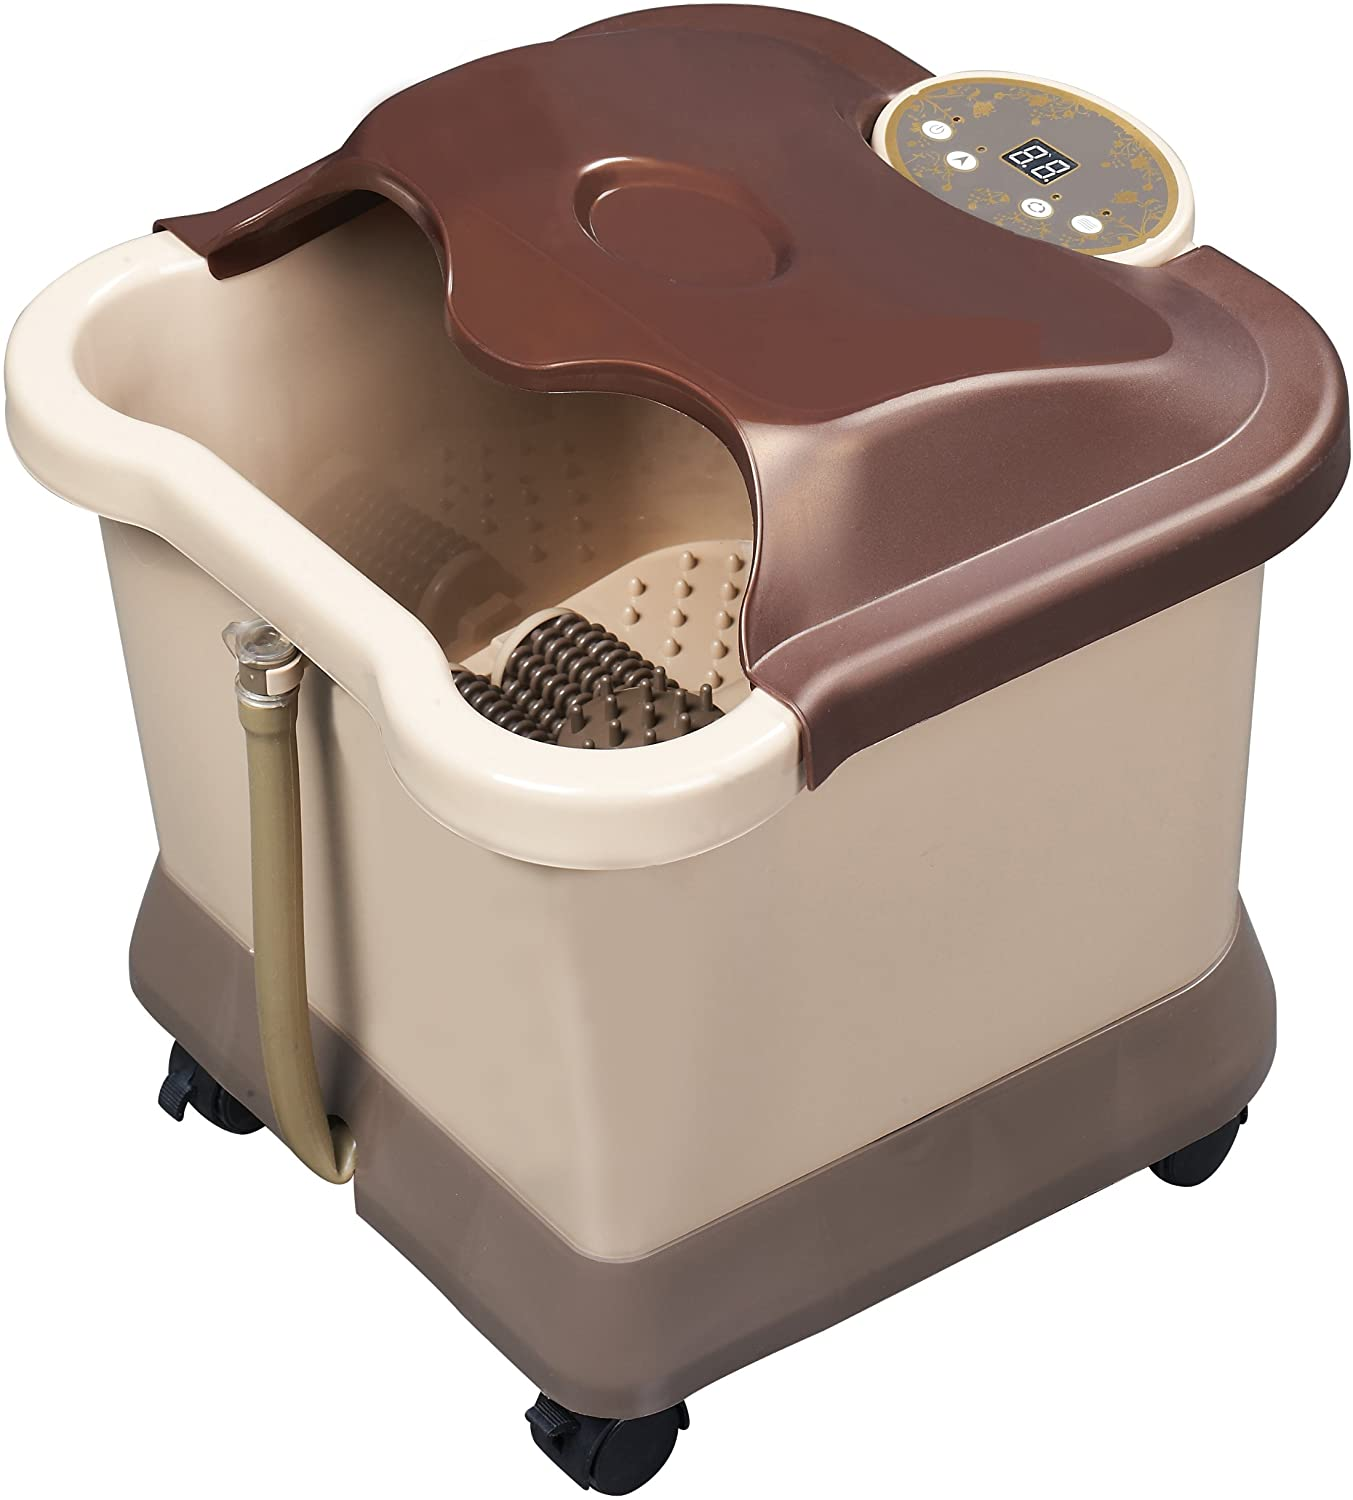 Carepeutic Deluxe Motorized Foot and Leg Spa Bath Massager